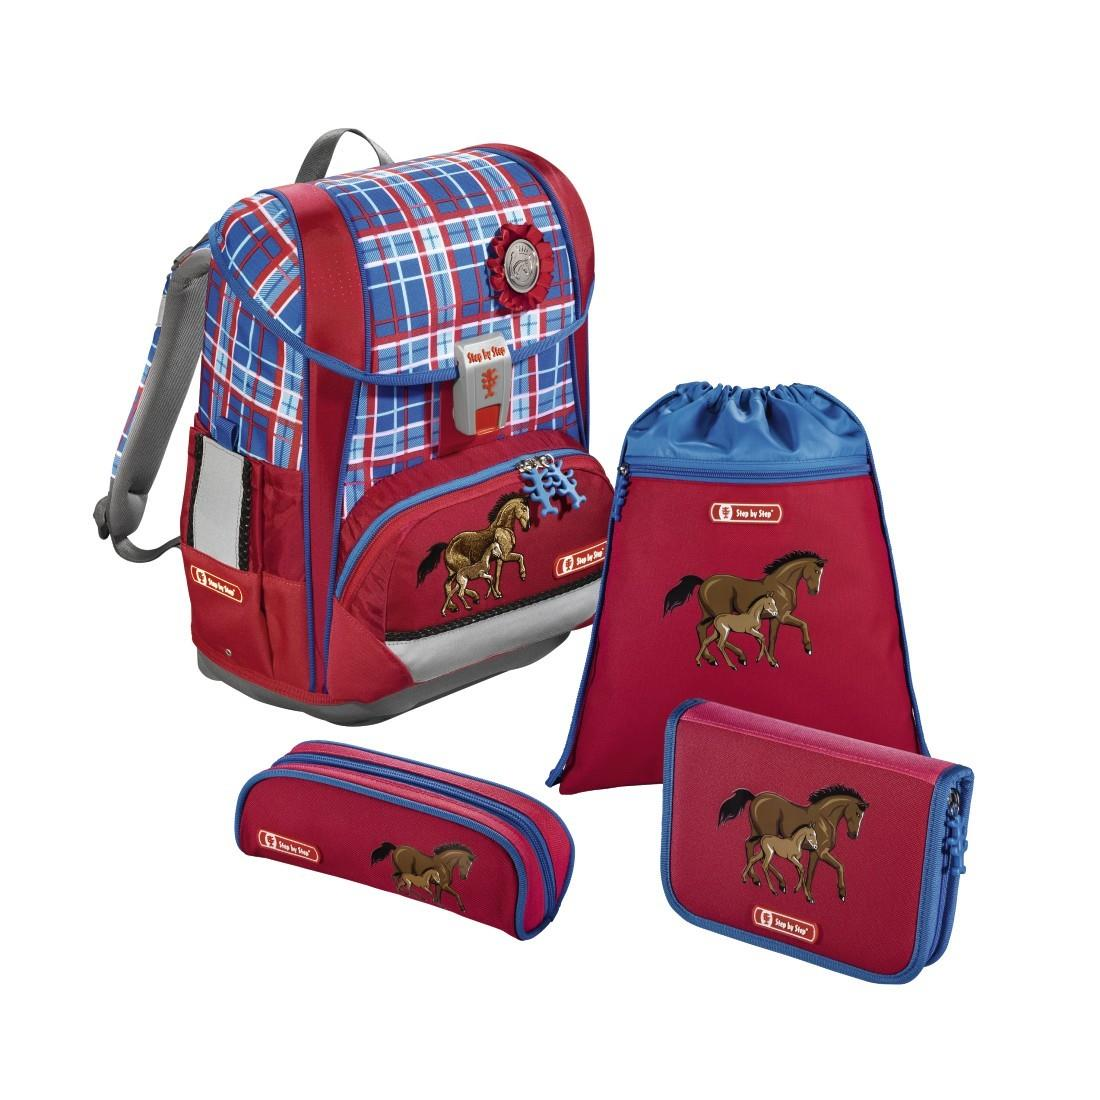 Step by Step Schulranzenset LIGHT 2 Horse Family 4-teilig